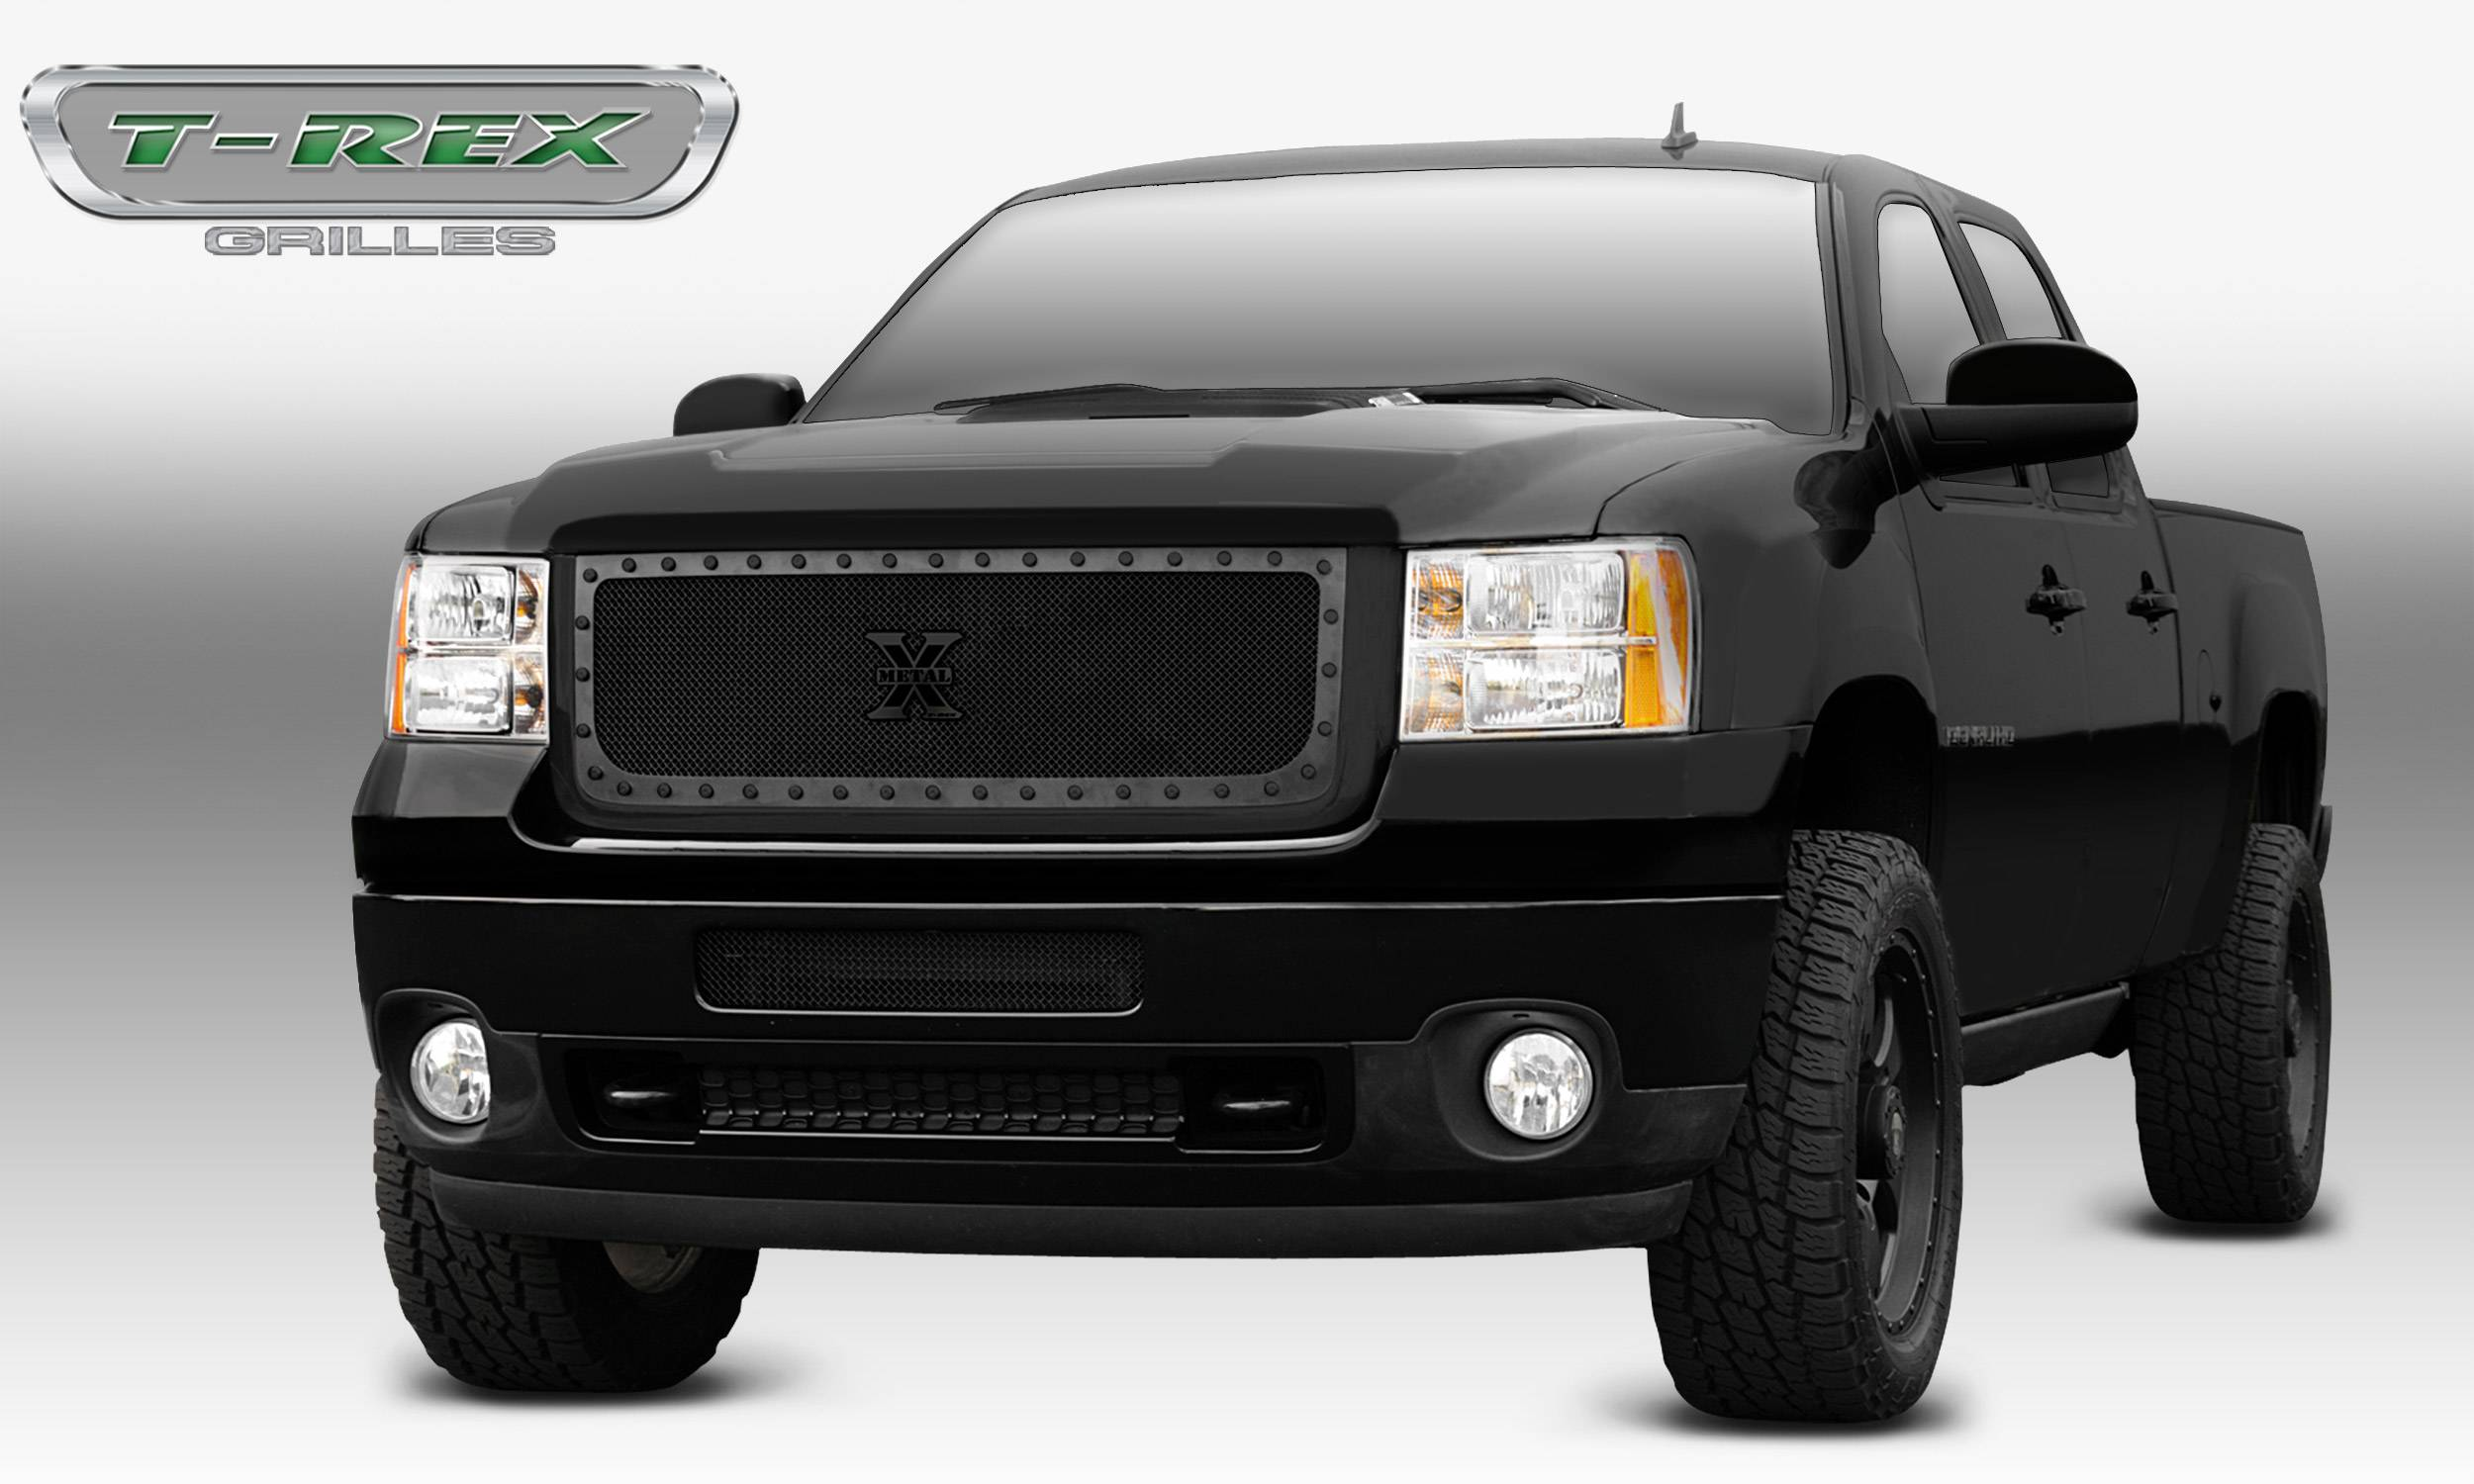 T-REX Grilles - GMC Sierra HD X-METAL Series - Studded Main Grille - ALL Black - Pt # 6712091-BR